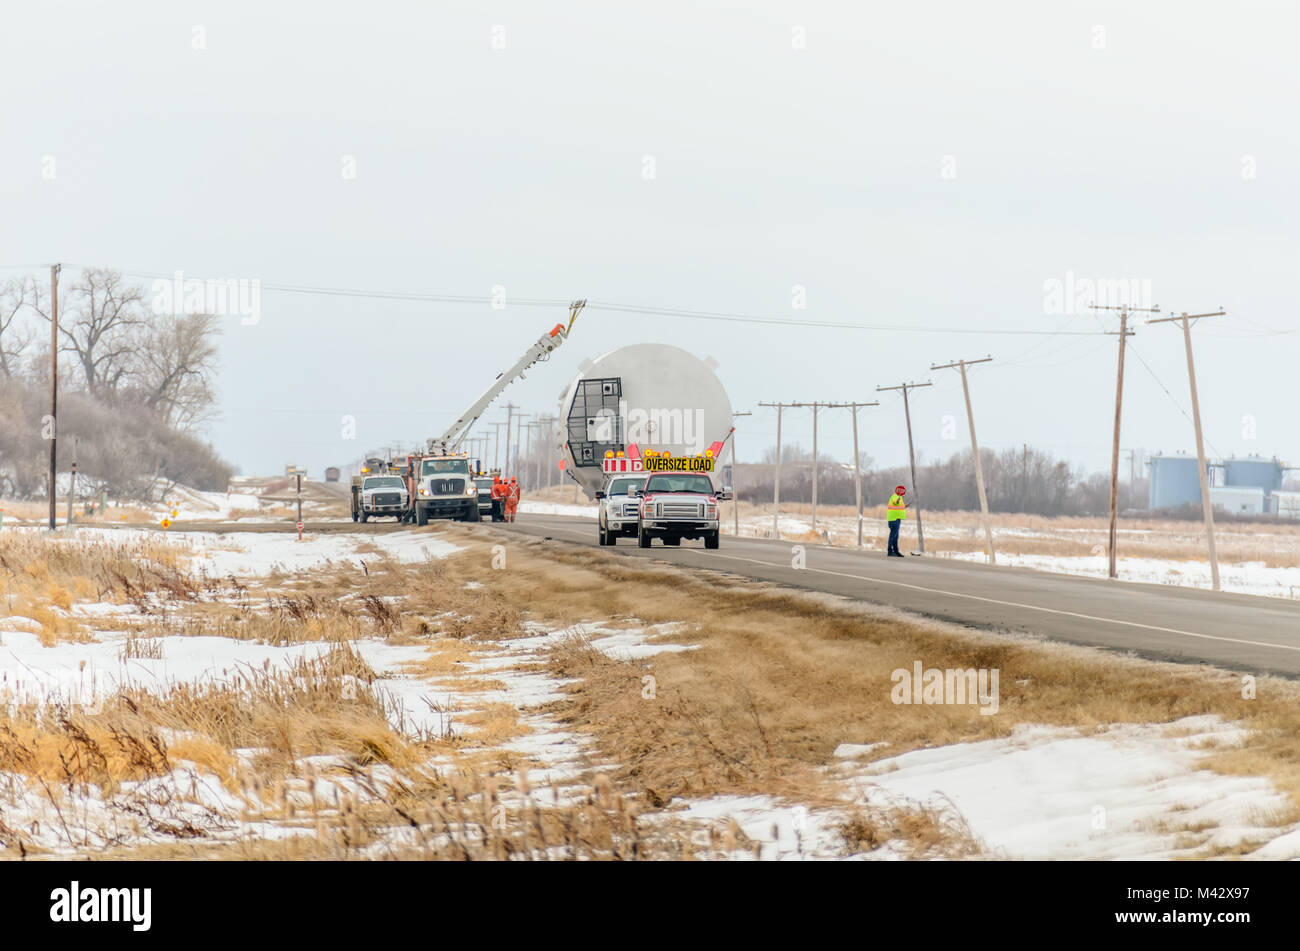 A team of road workers provides transportation of a huge oversized cargo in winter, by car under a power line - Stock Image